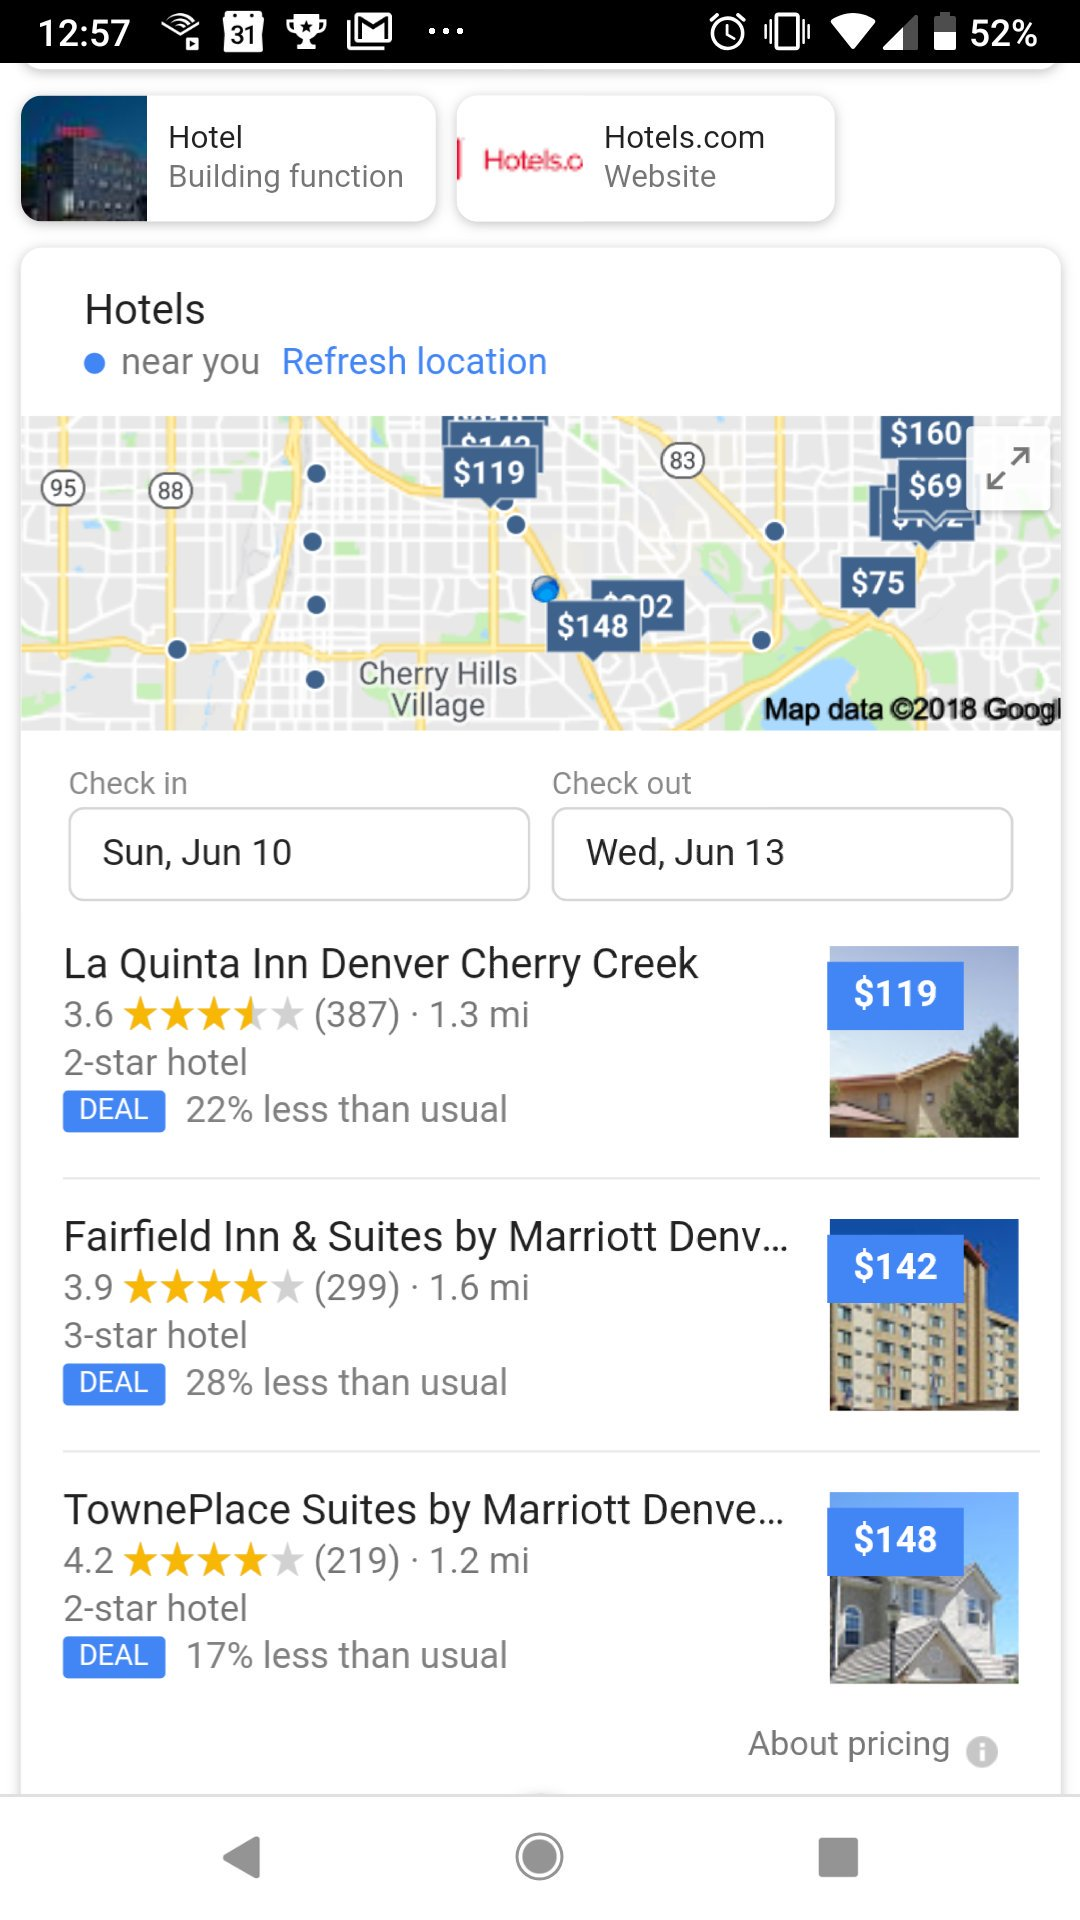 google local pack disambiguation 1 - Google Testing Disambiguation Box for Local Packs